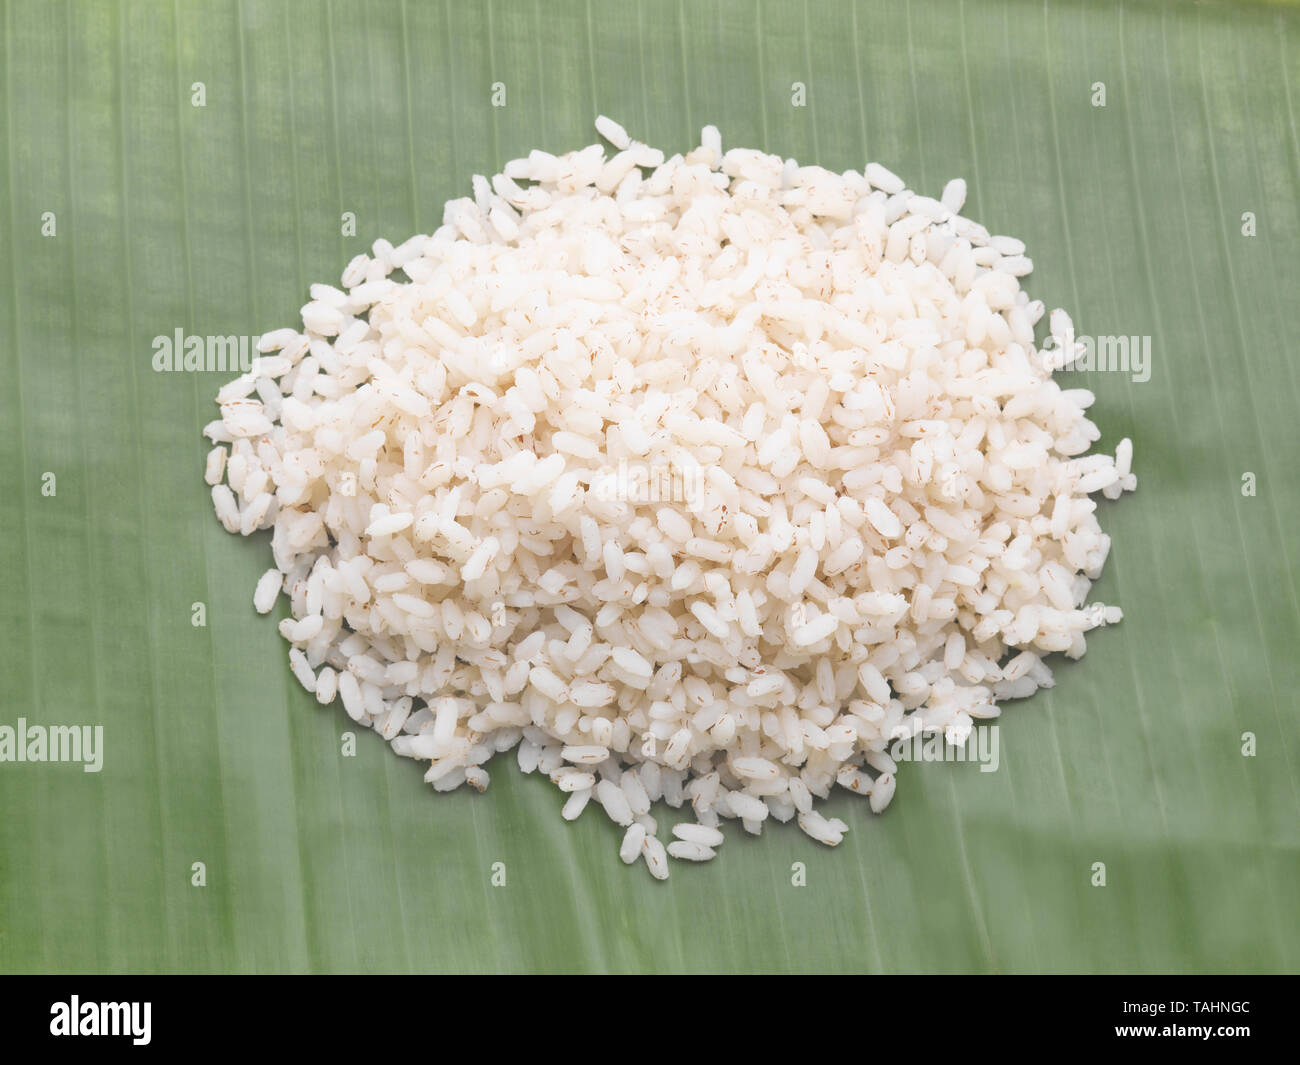 STILL LIFE OF BROWN RICE ON A GREEN PLANTAIN LEAF - Stock Image